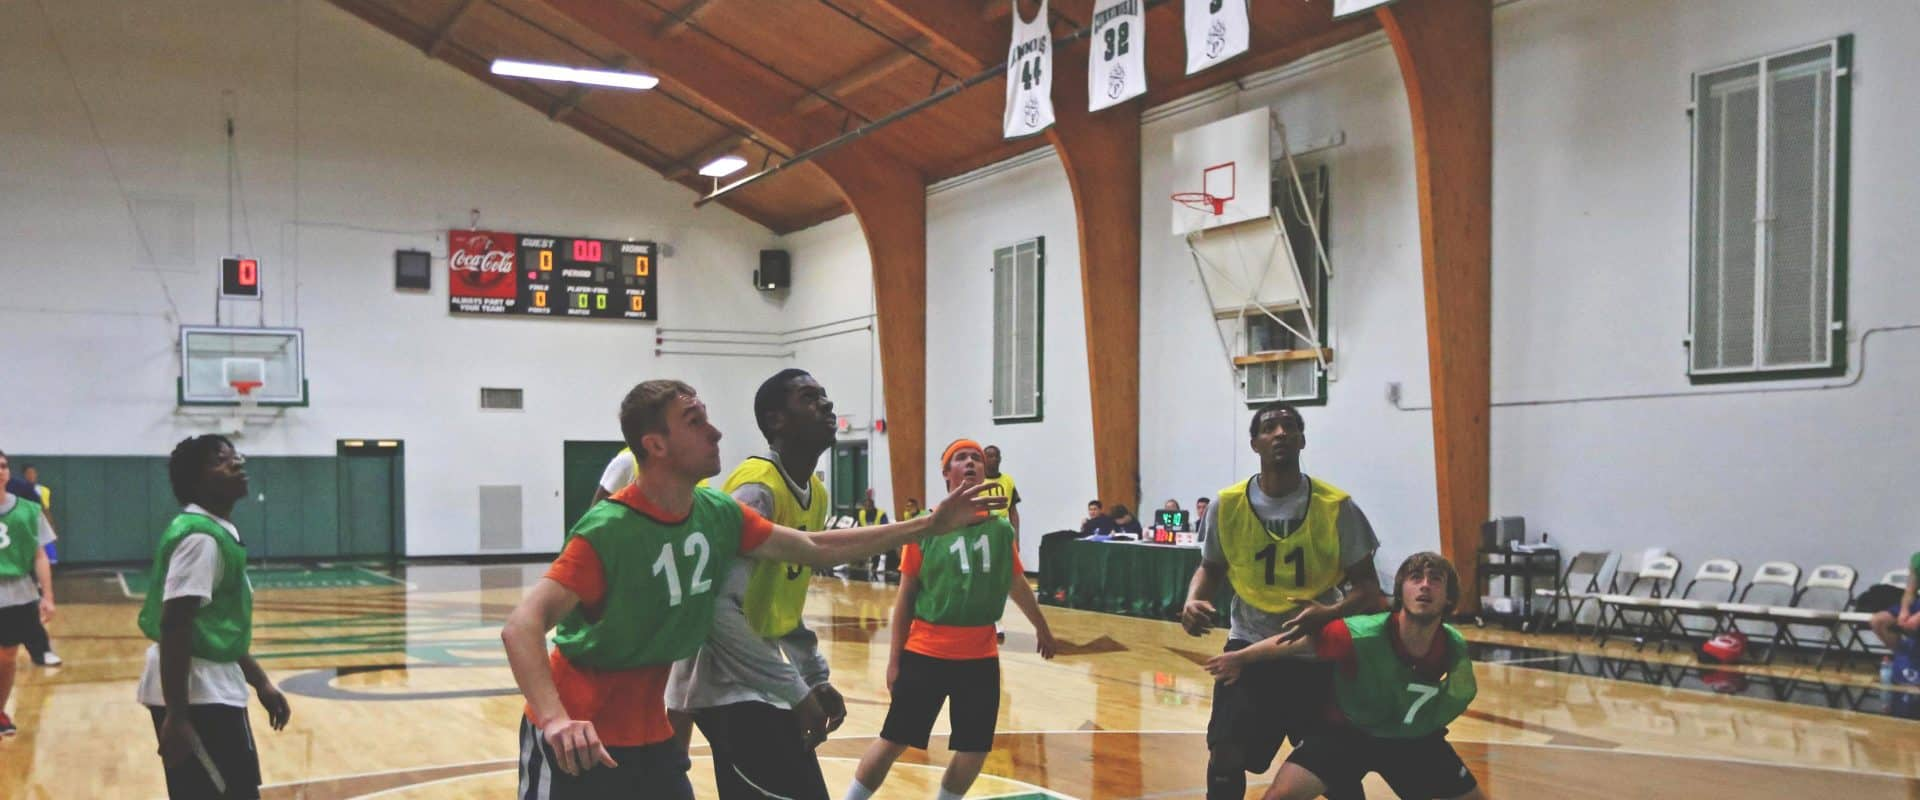 WPU students play an intramural basketball game.